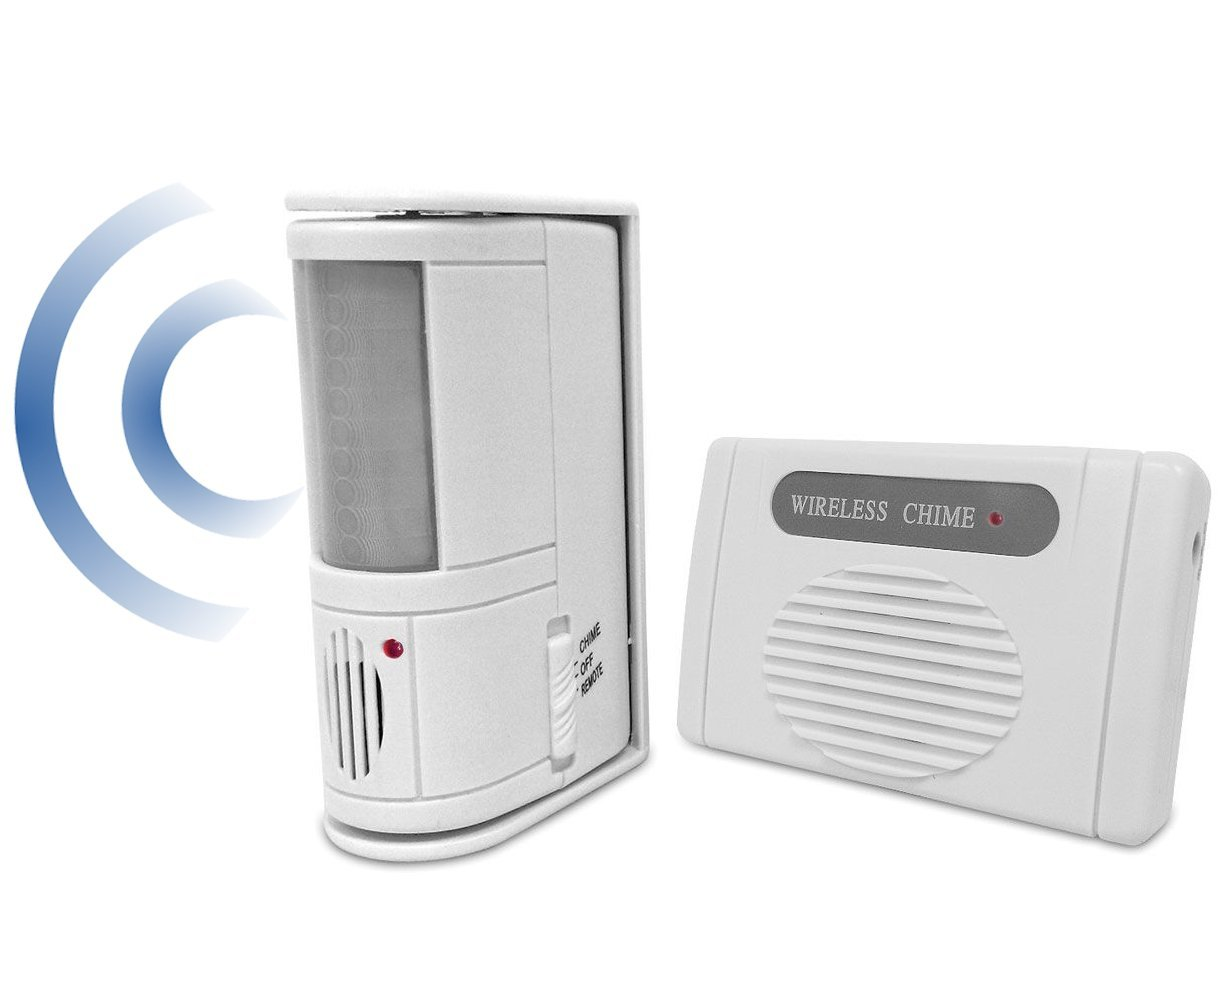 Wander Alarm with Motion Detector